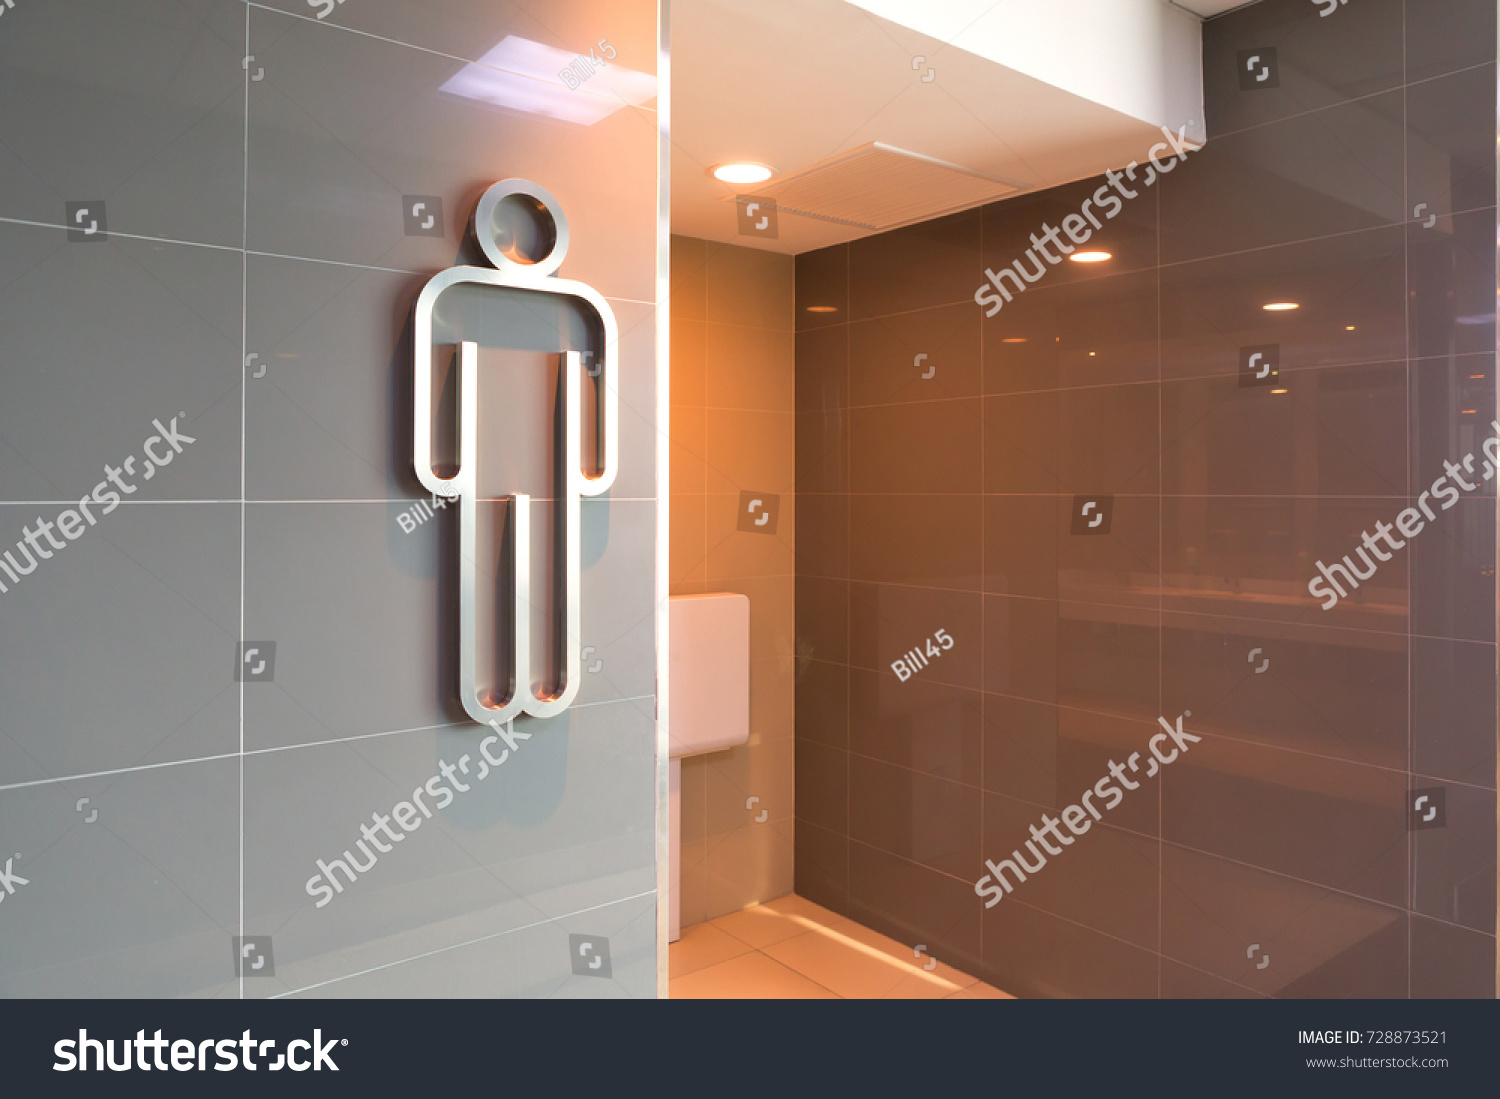 Modern Public Men Toilet Sign On Stock Photo (Edit Now) 728873521 ...